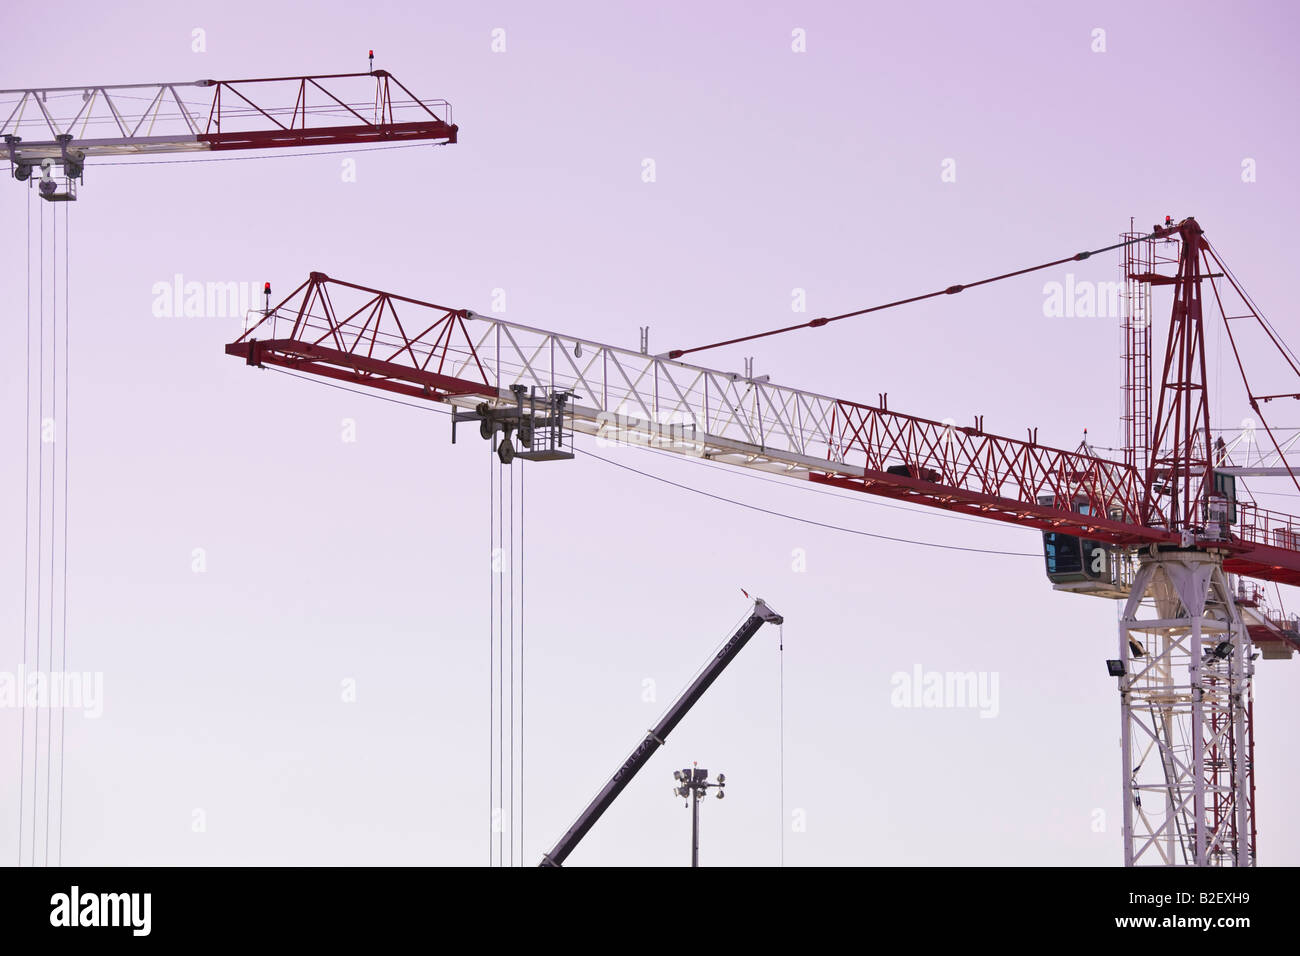 Cranes on construction site - Stock Image